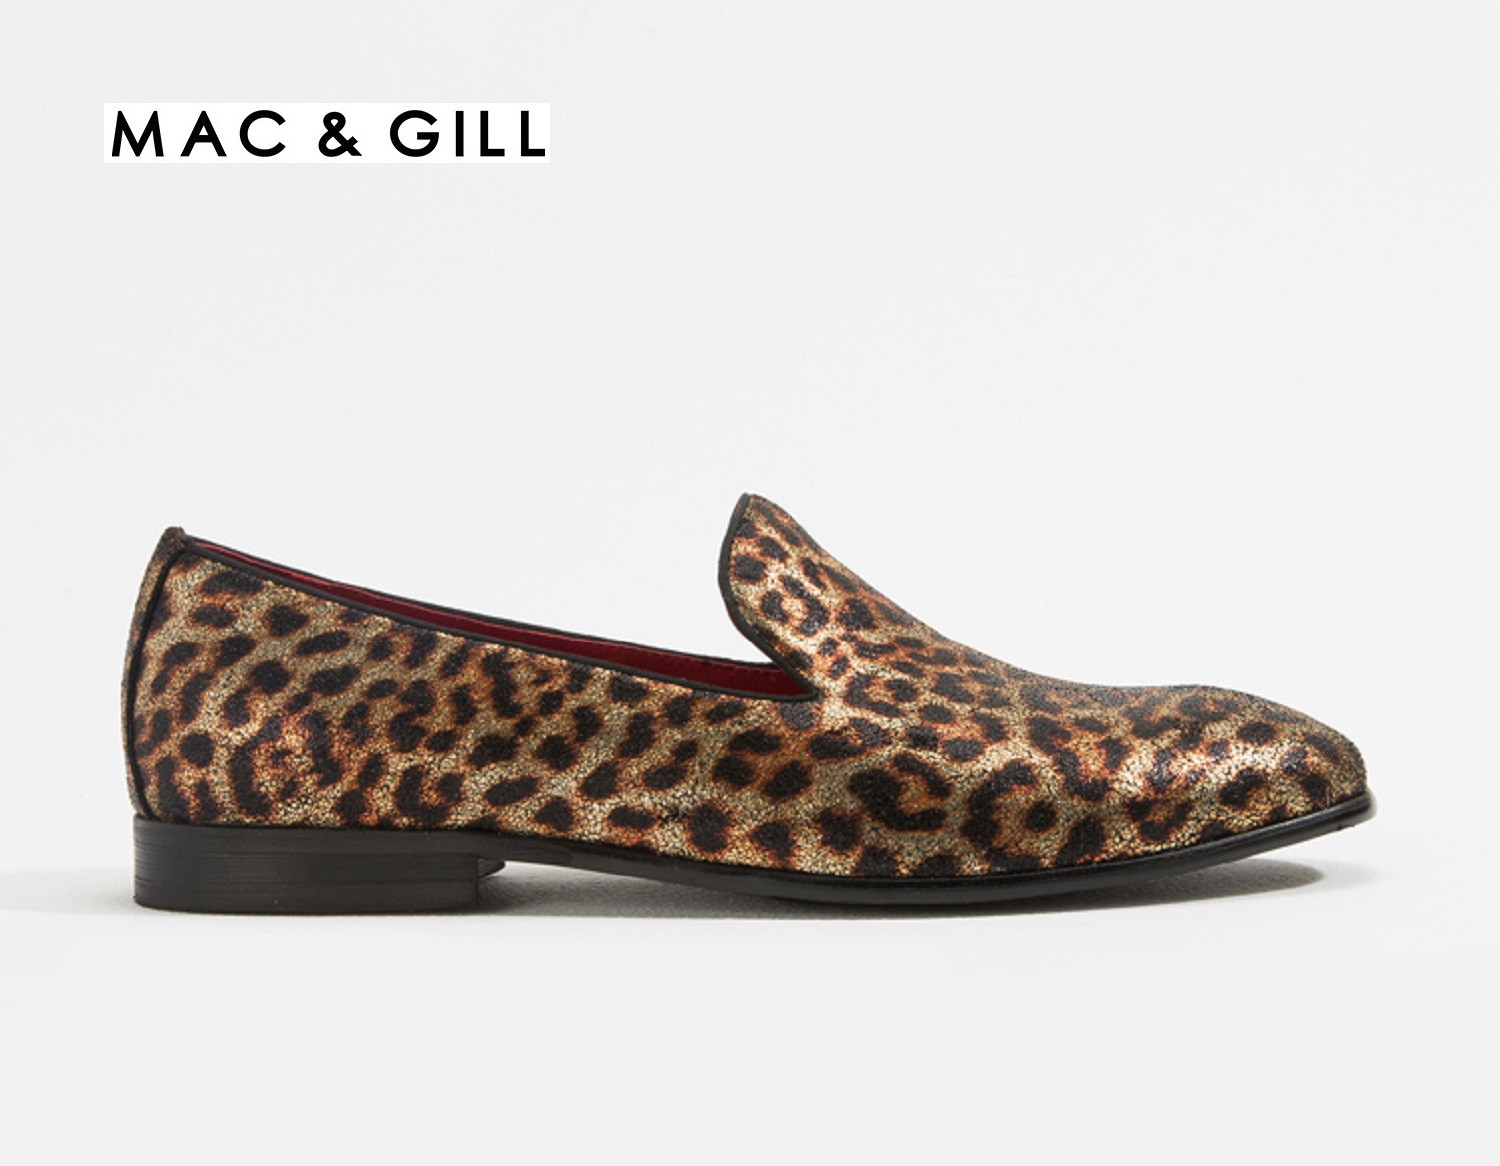 LEOPARD PRINT LEATHER LOAFERS FOR CASUAL AND EVENING PARTY